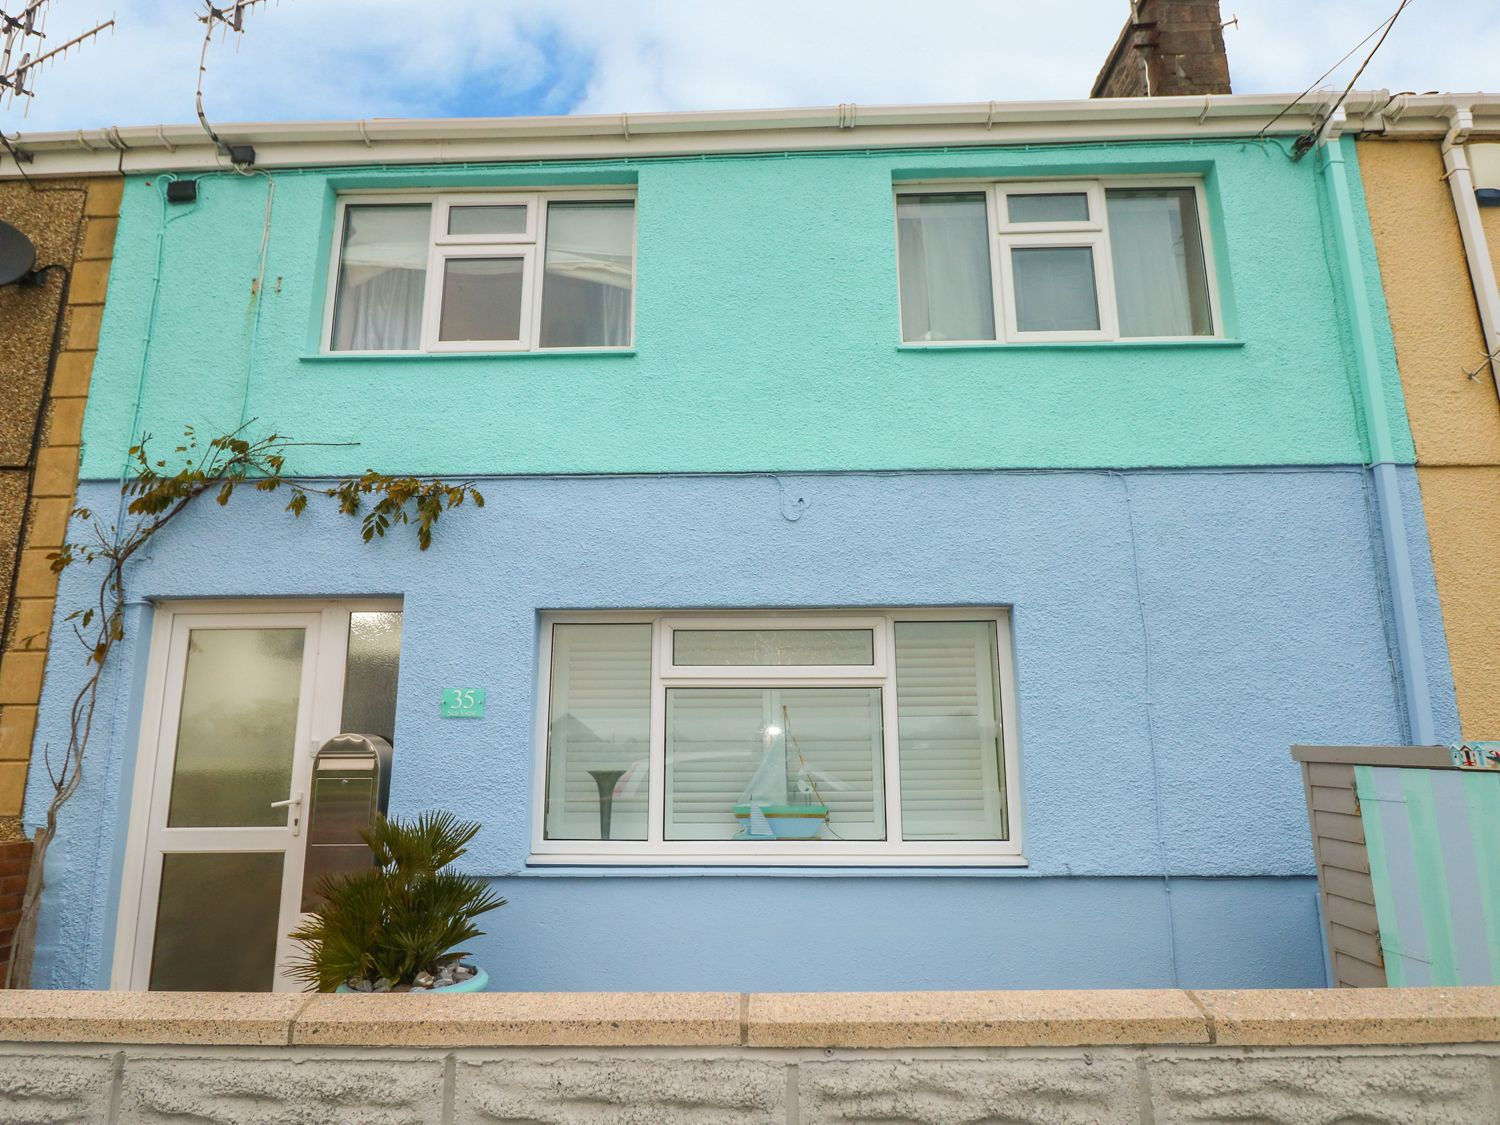 35 Seaview Terrace - South Wales - 991517 - photo 1